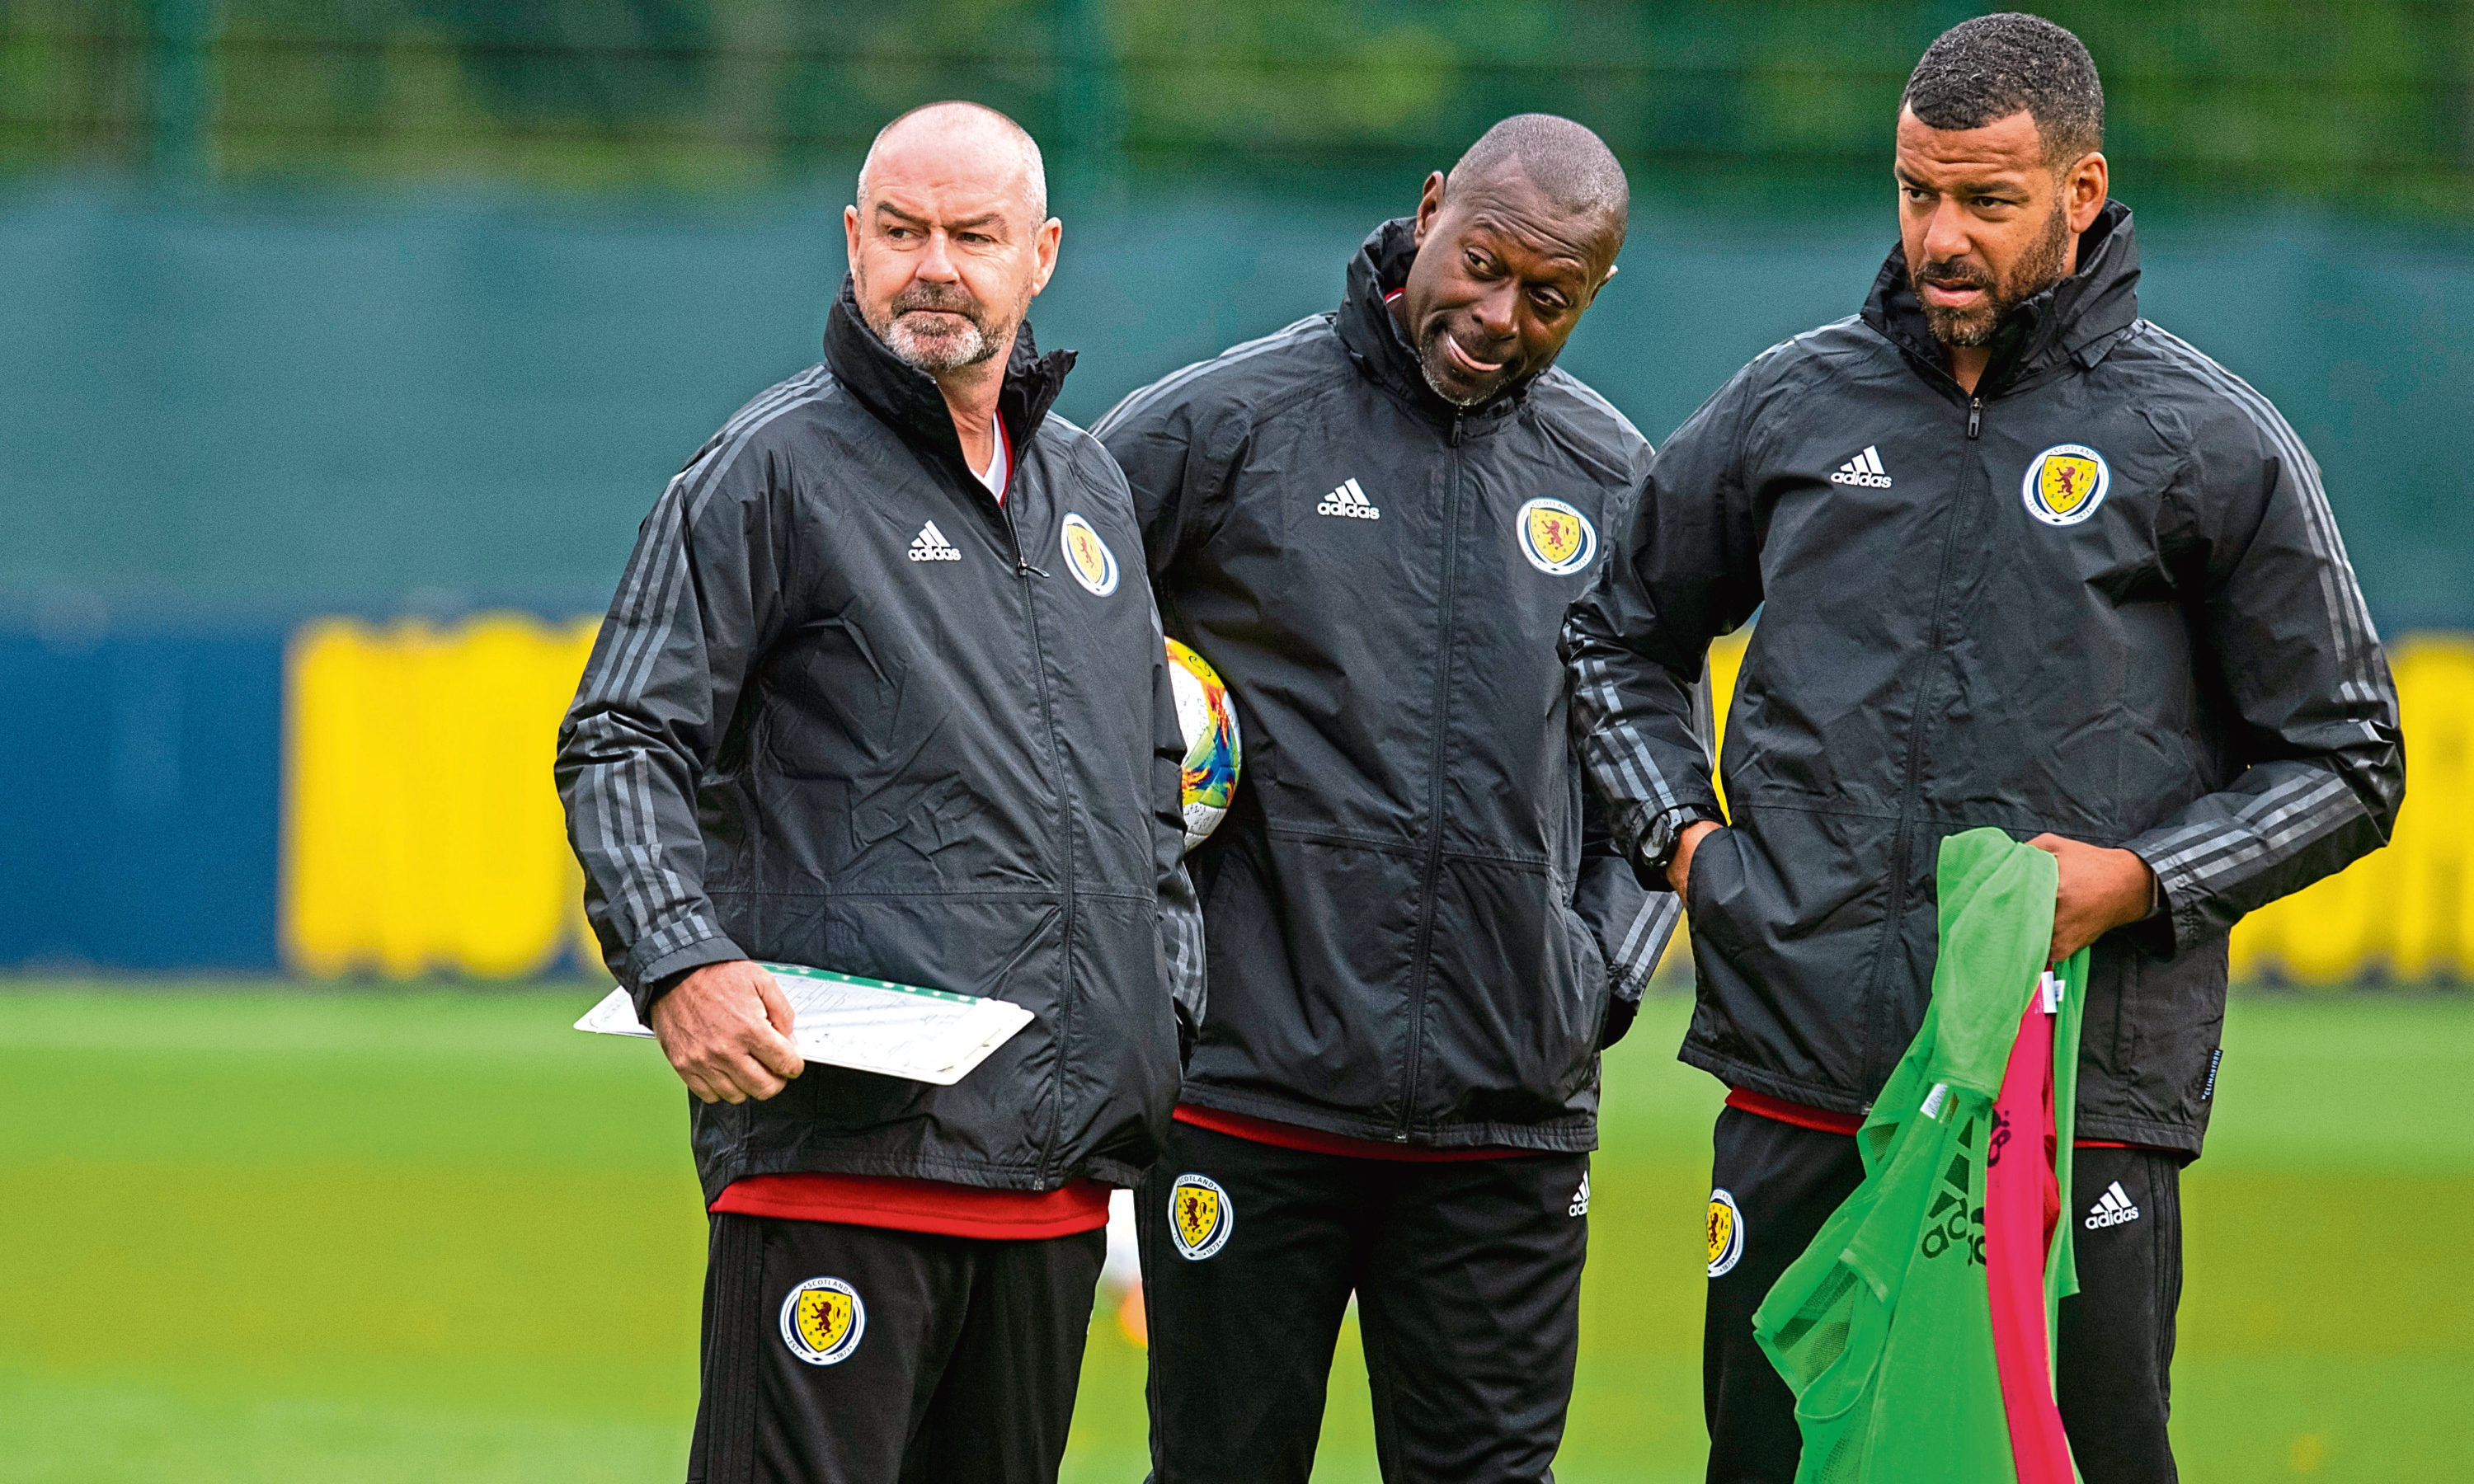 Steve Clarke with coaches Steven Reid and Alex Dyer.